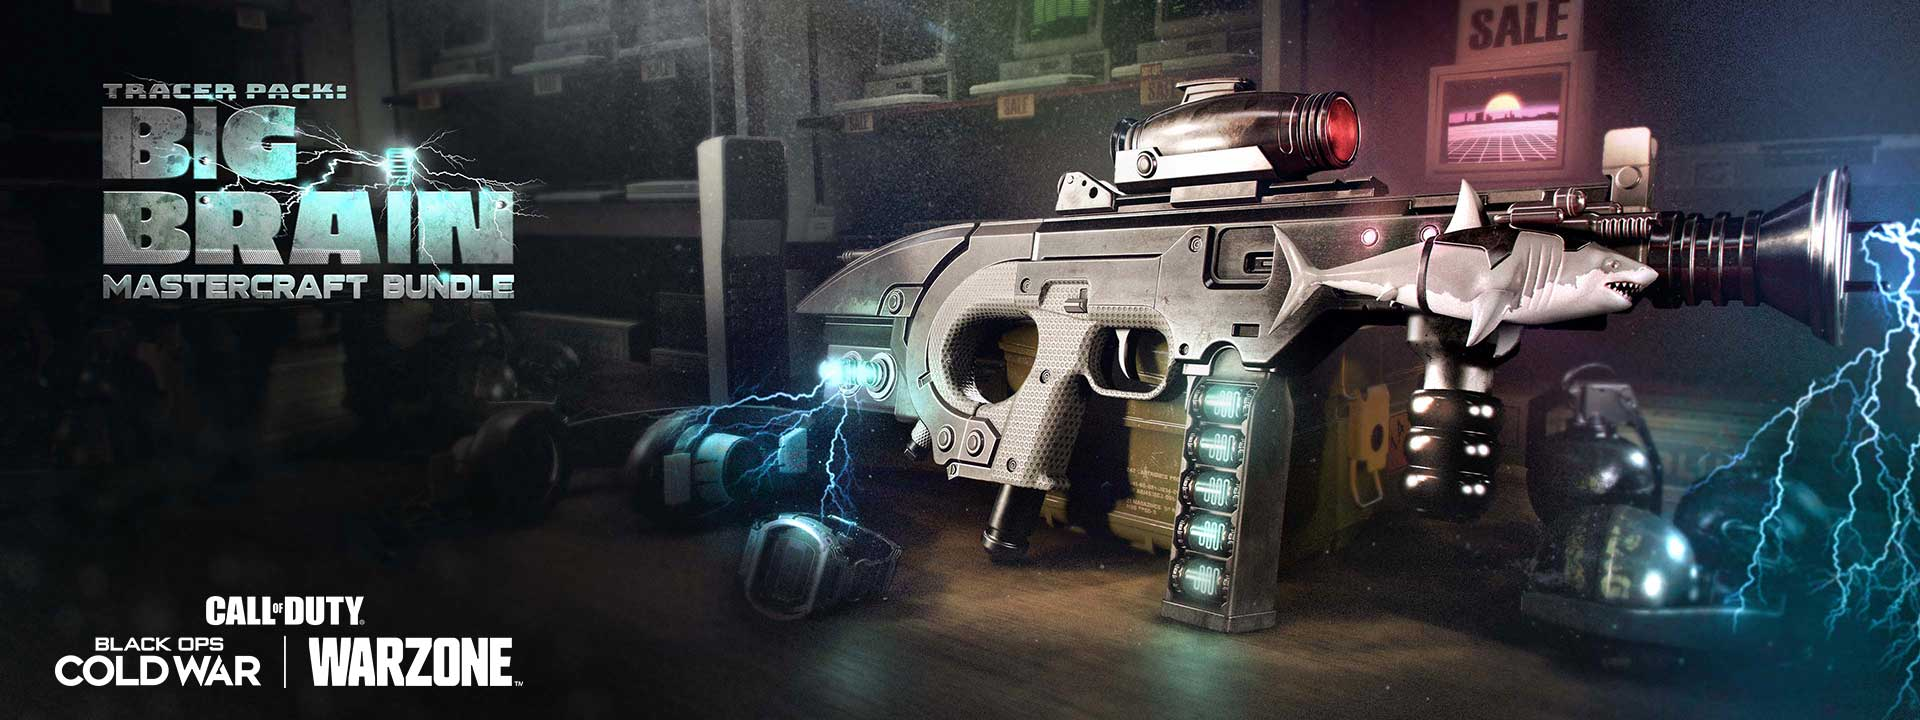 Gun with shark design that has electricity surrounding it